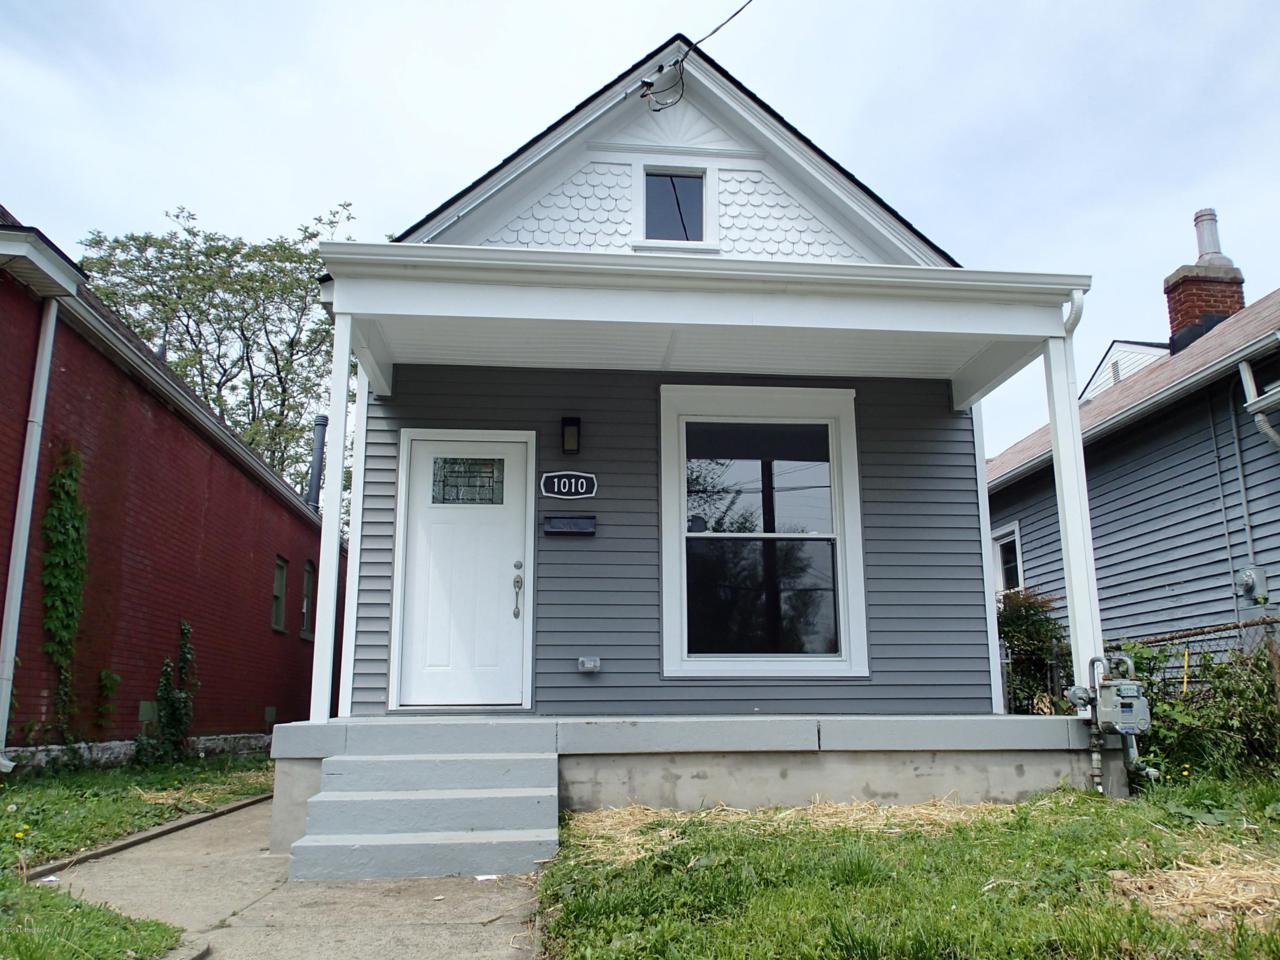 1010 Shelby St - Photo 1